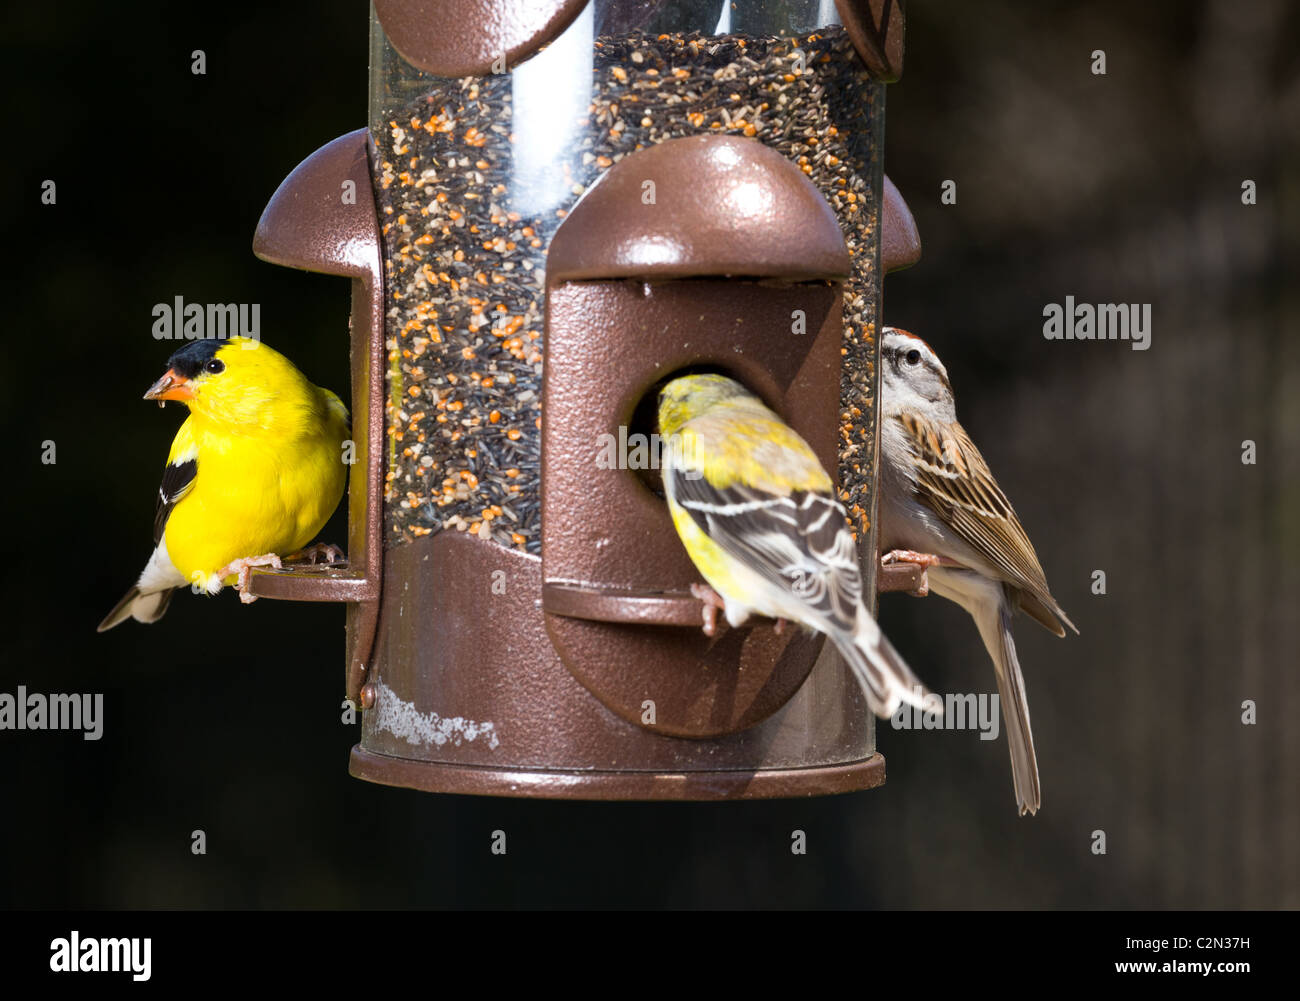 Garden birds including a bright yellow American goldfinch eating from a modern bird feeder, USA - Stock Image